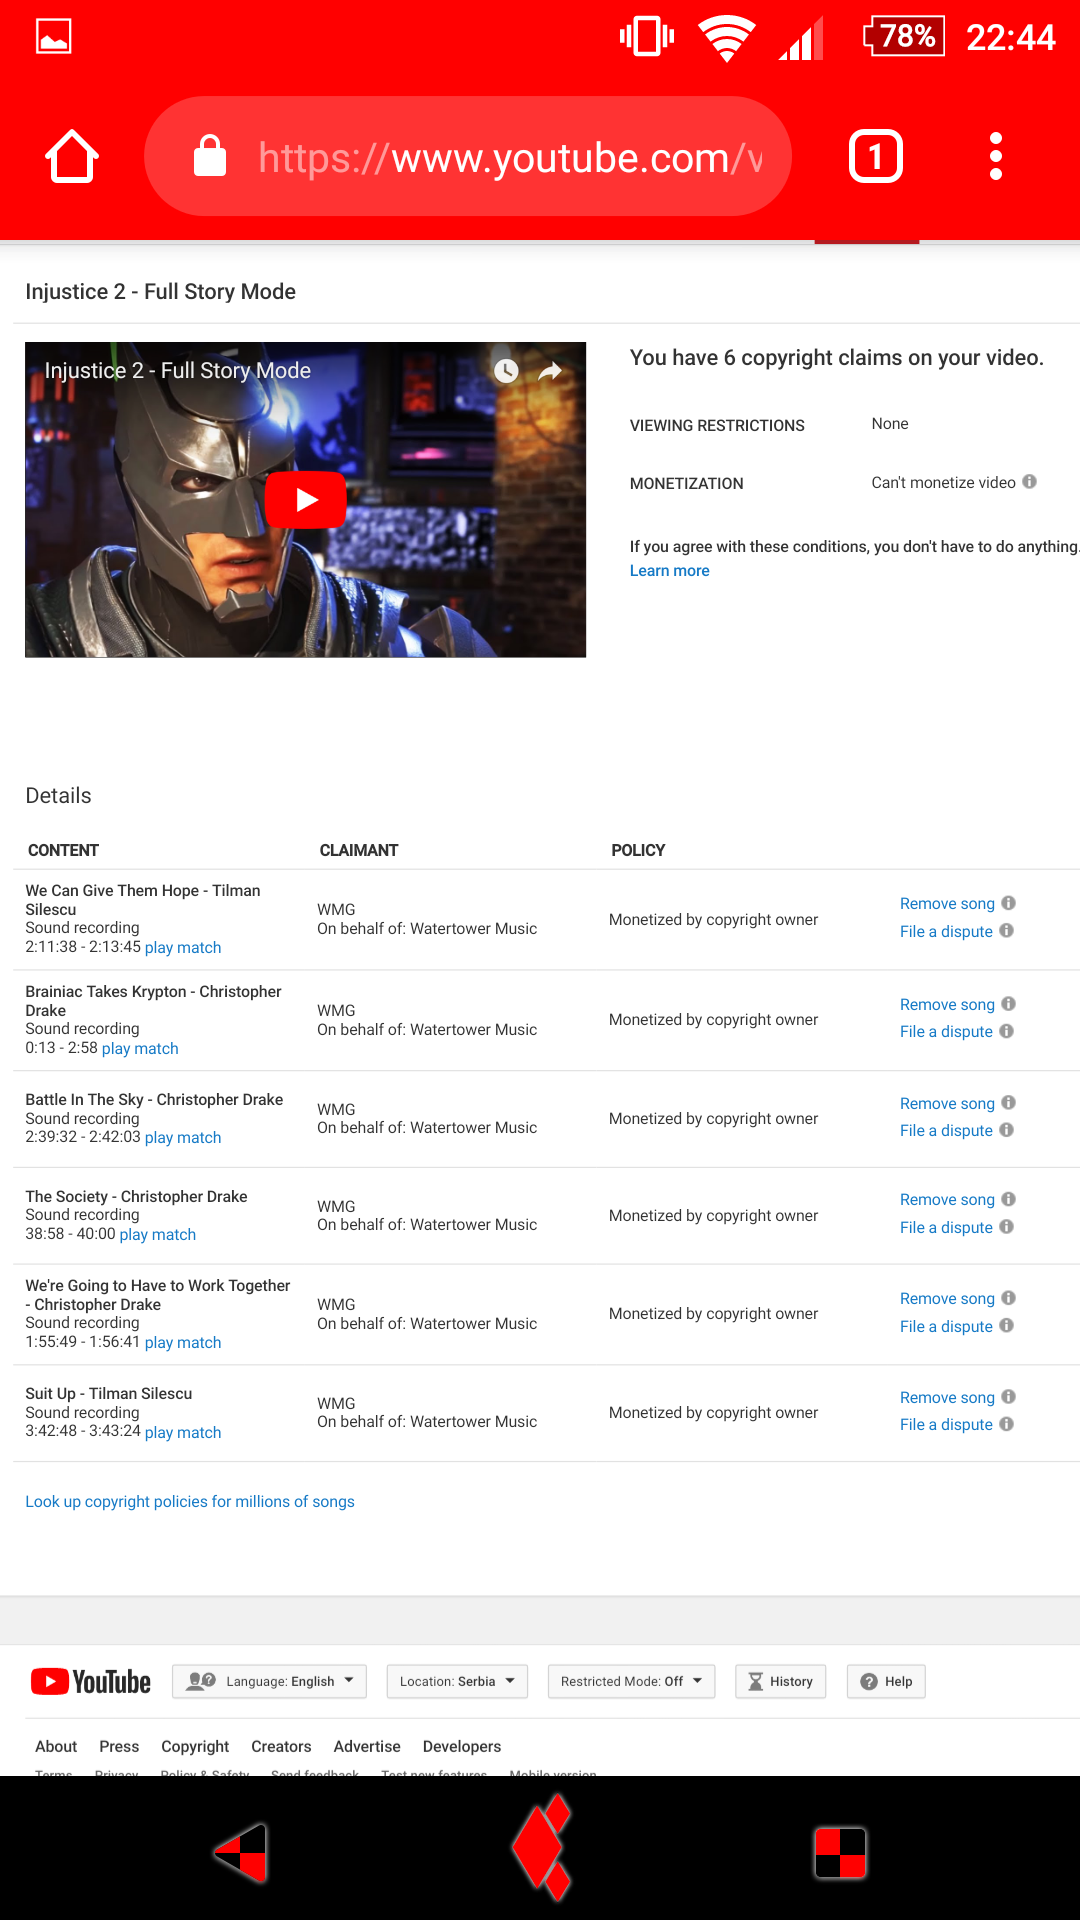 Why Do I Get Copyright Claimed For Using Music From The Video Game